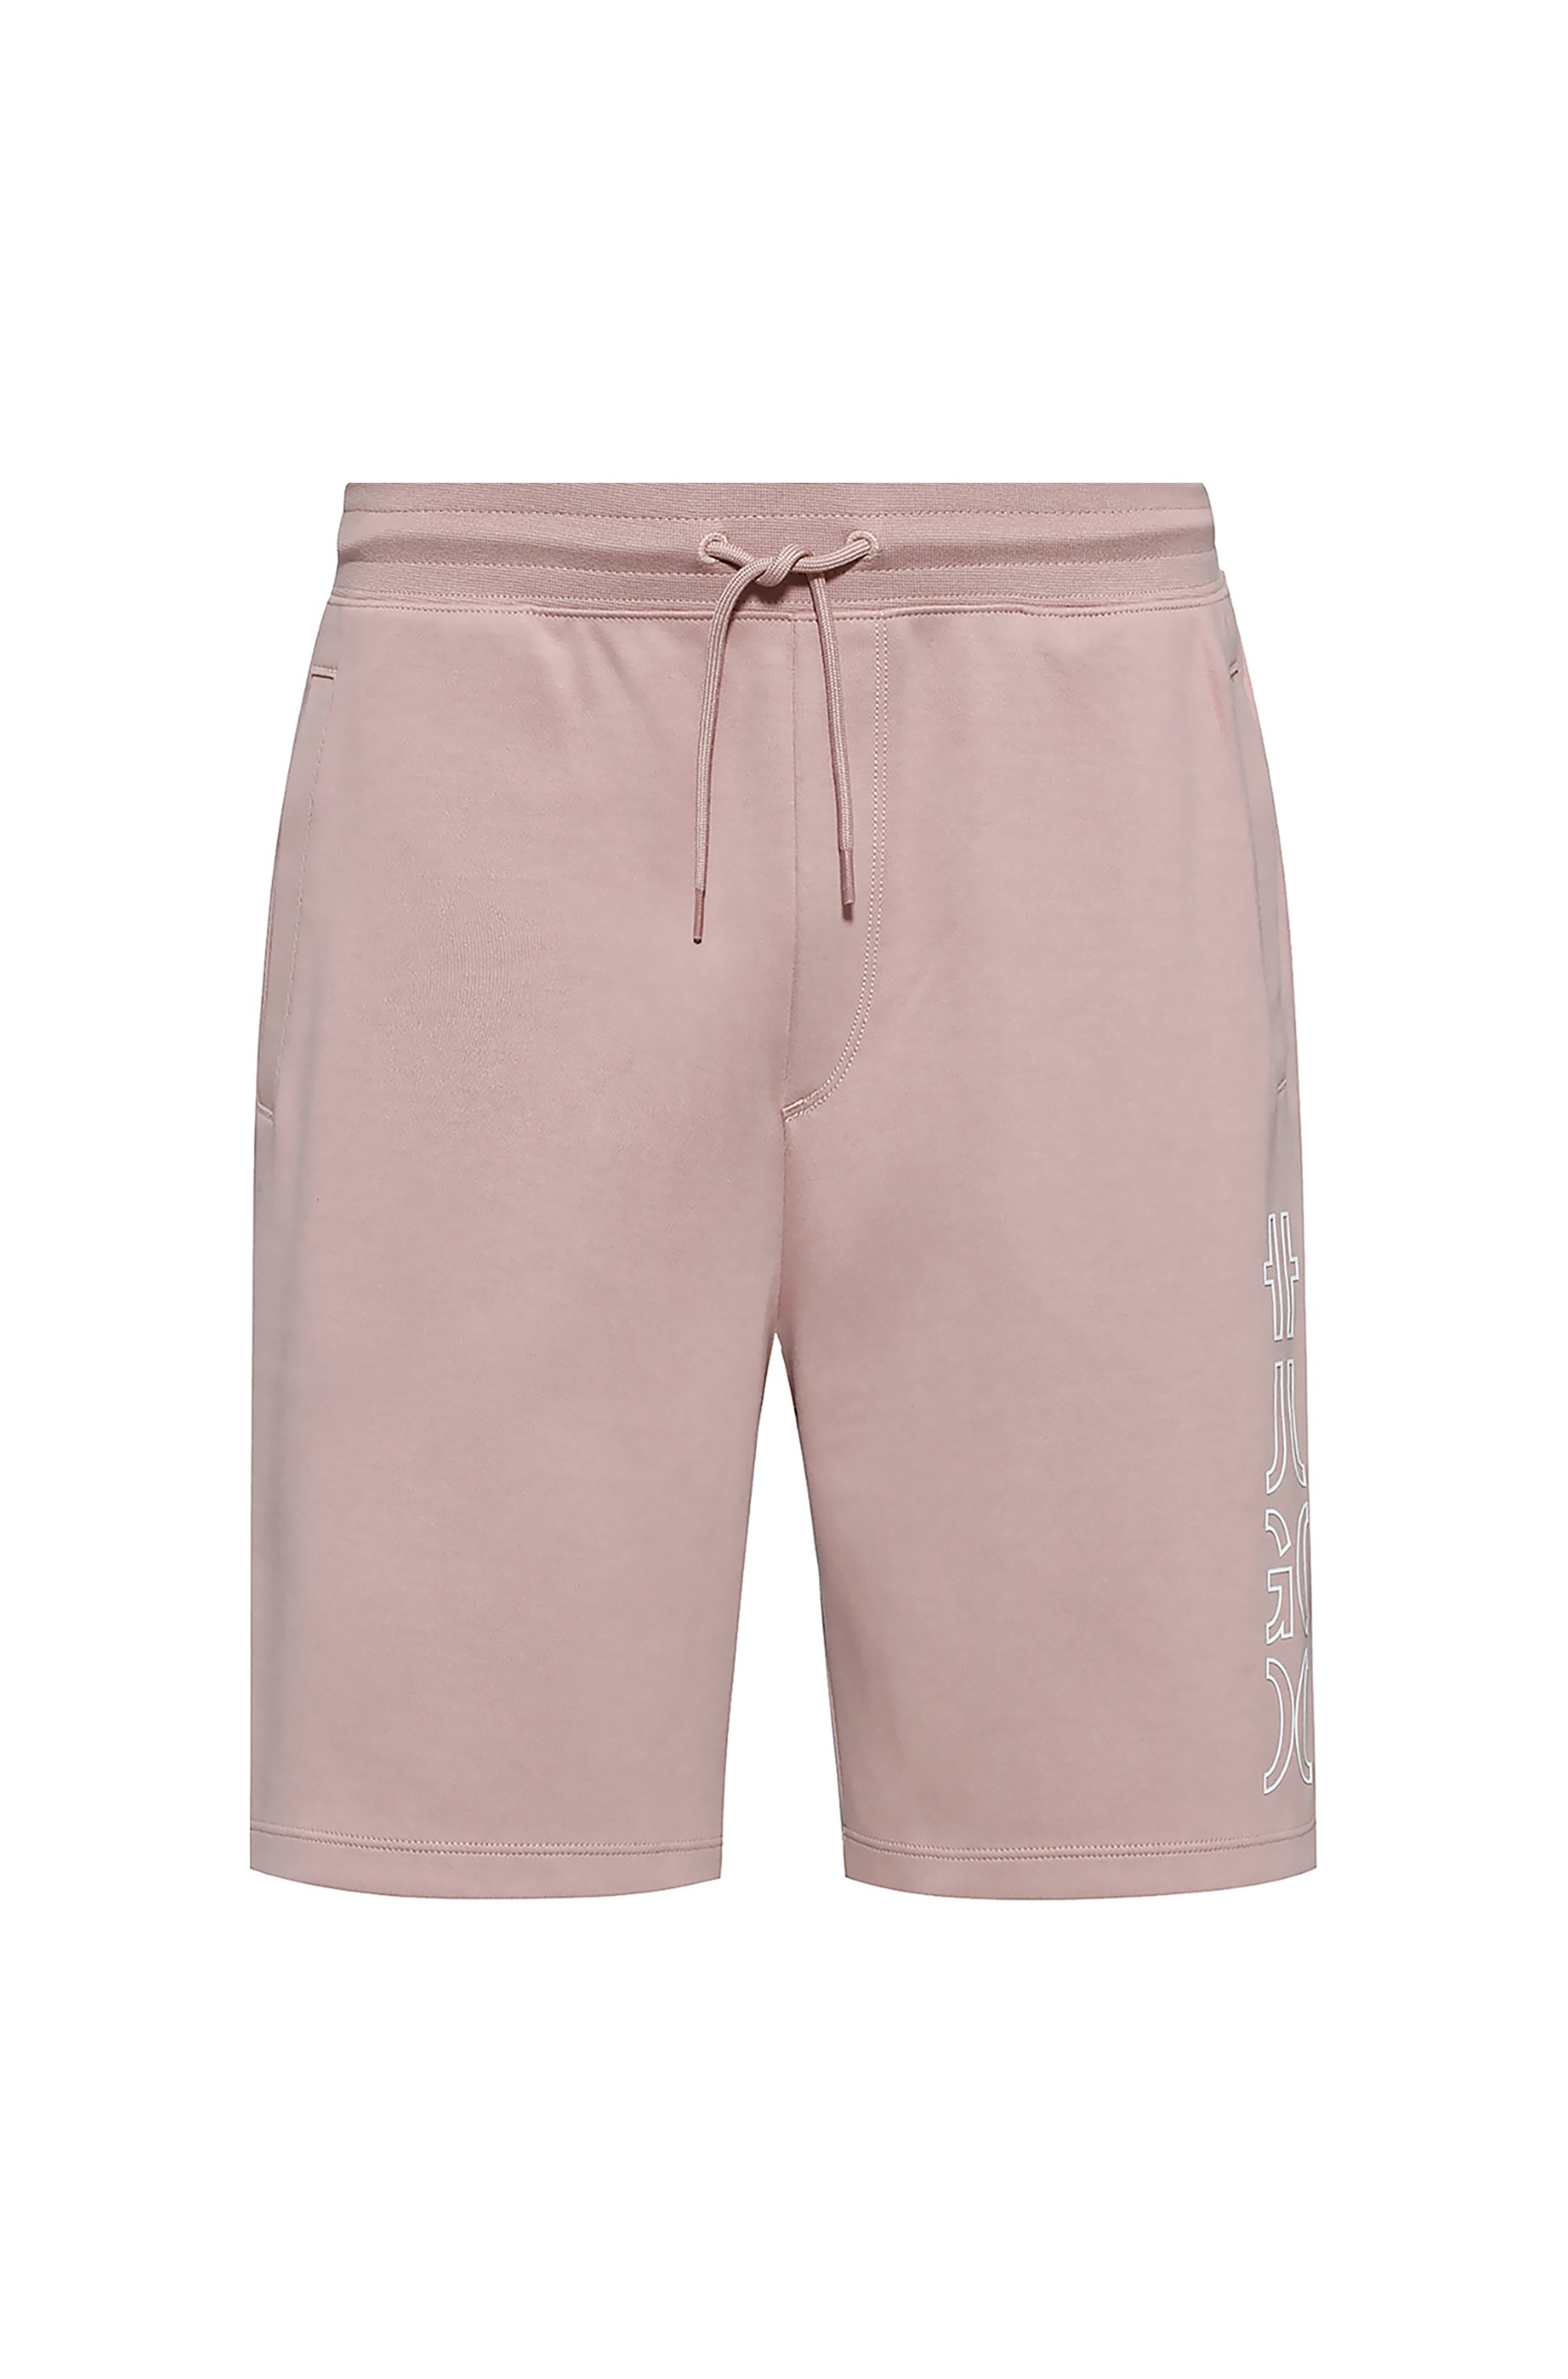 Organic-cotton shorts with cropped logo, light pink